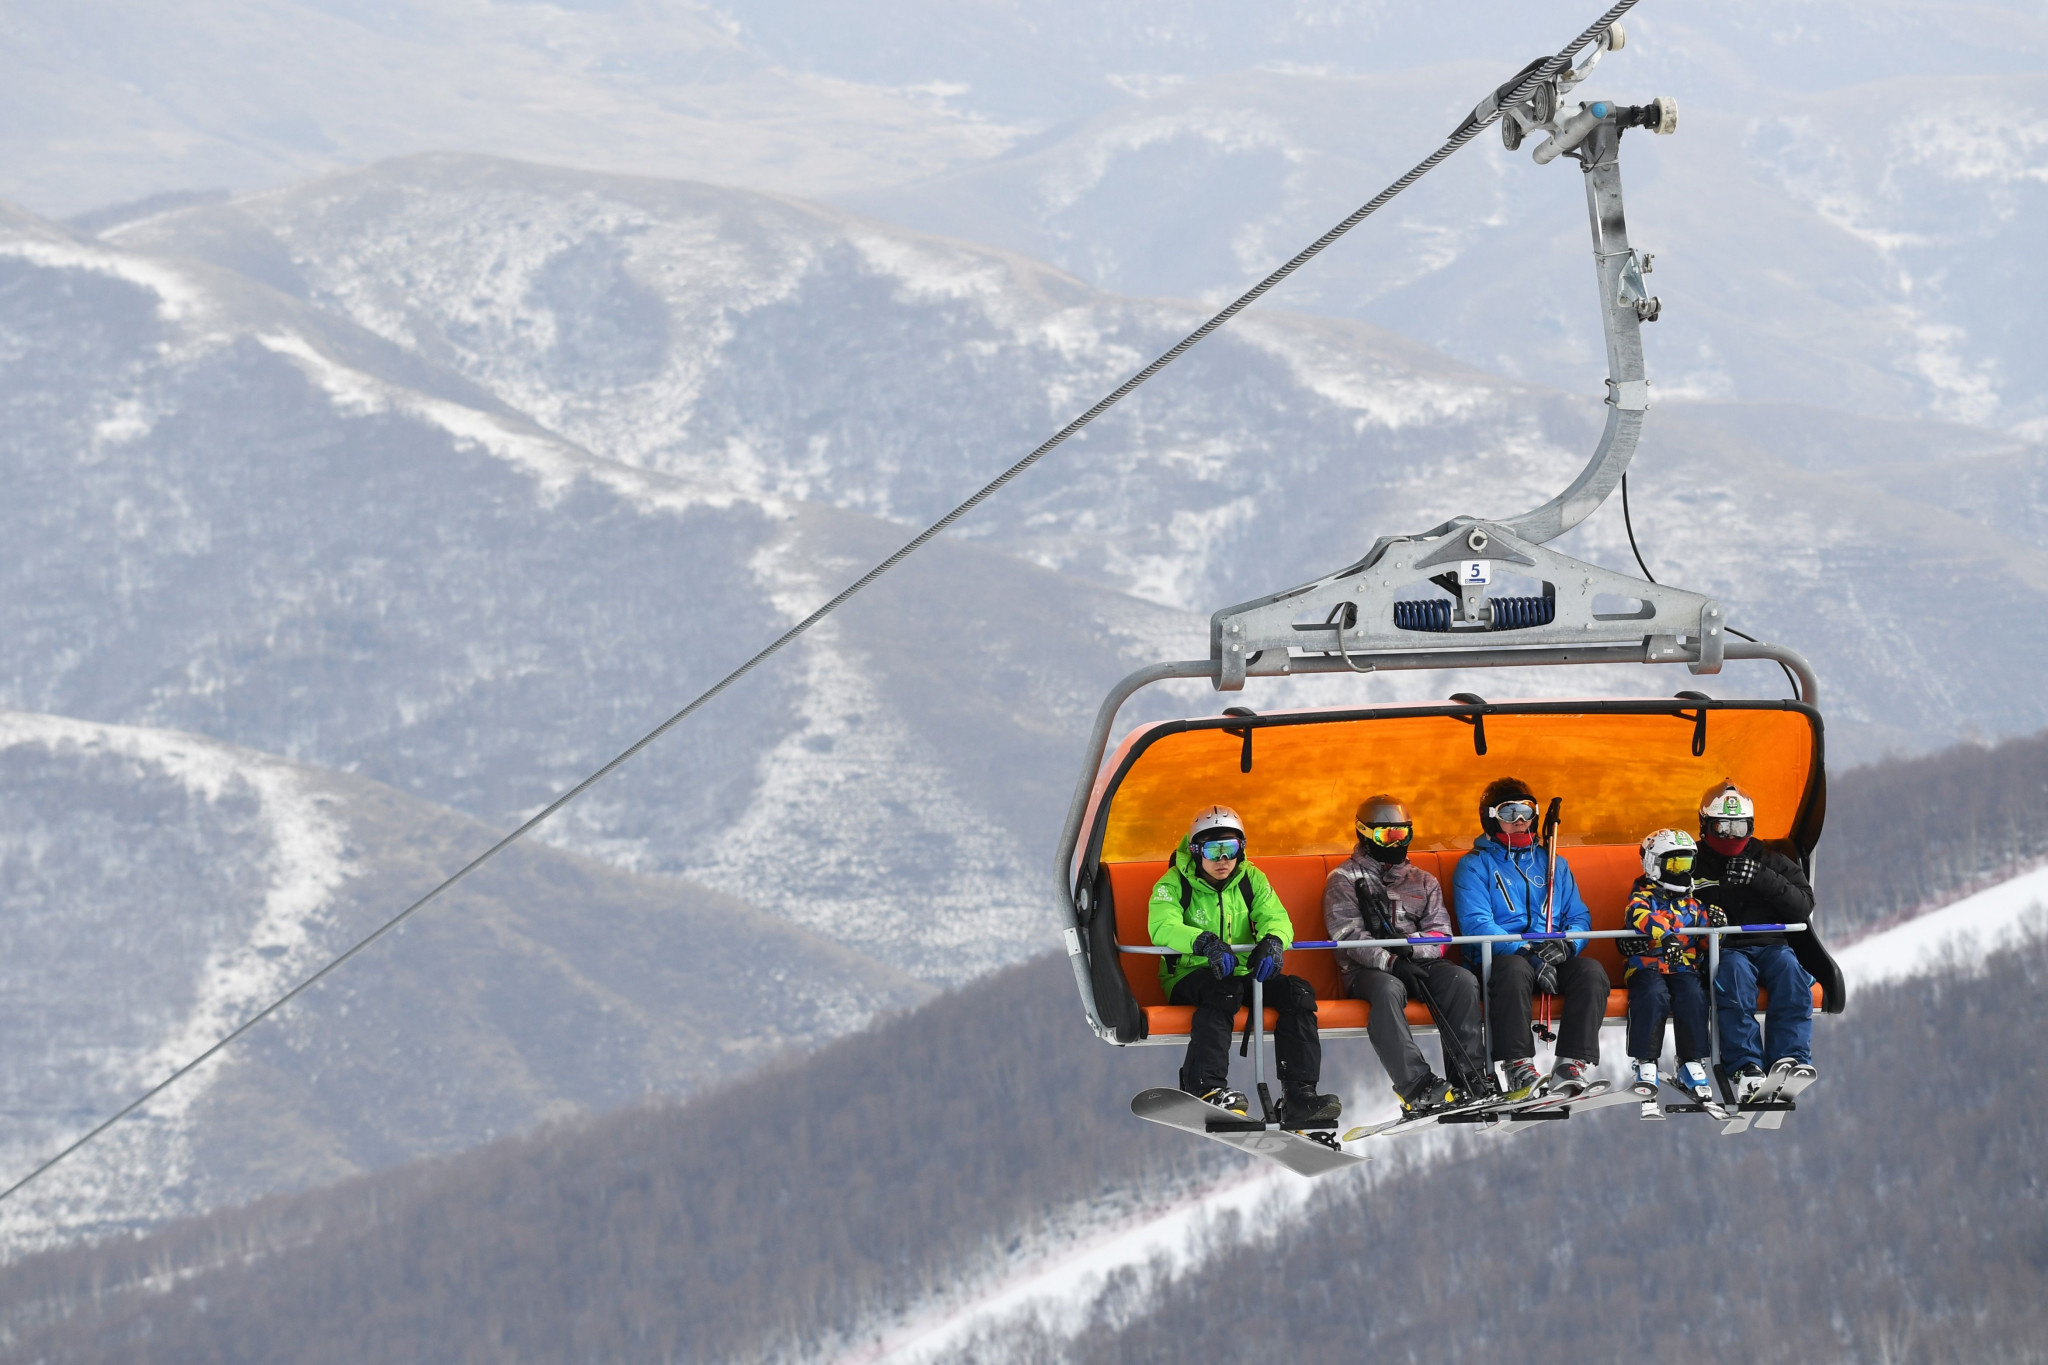 The Chinese Government's goal is to engage 300 million new winter sport participants by 2022 ©Getty Images